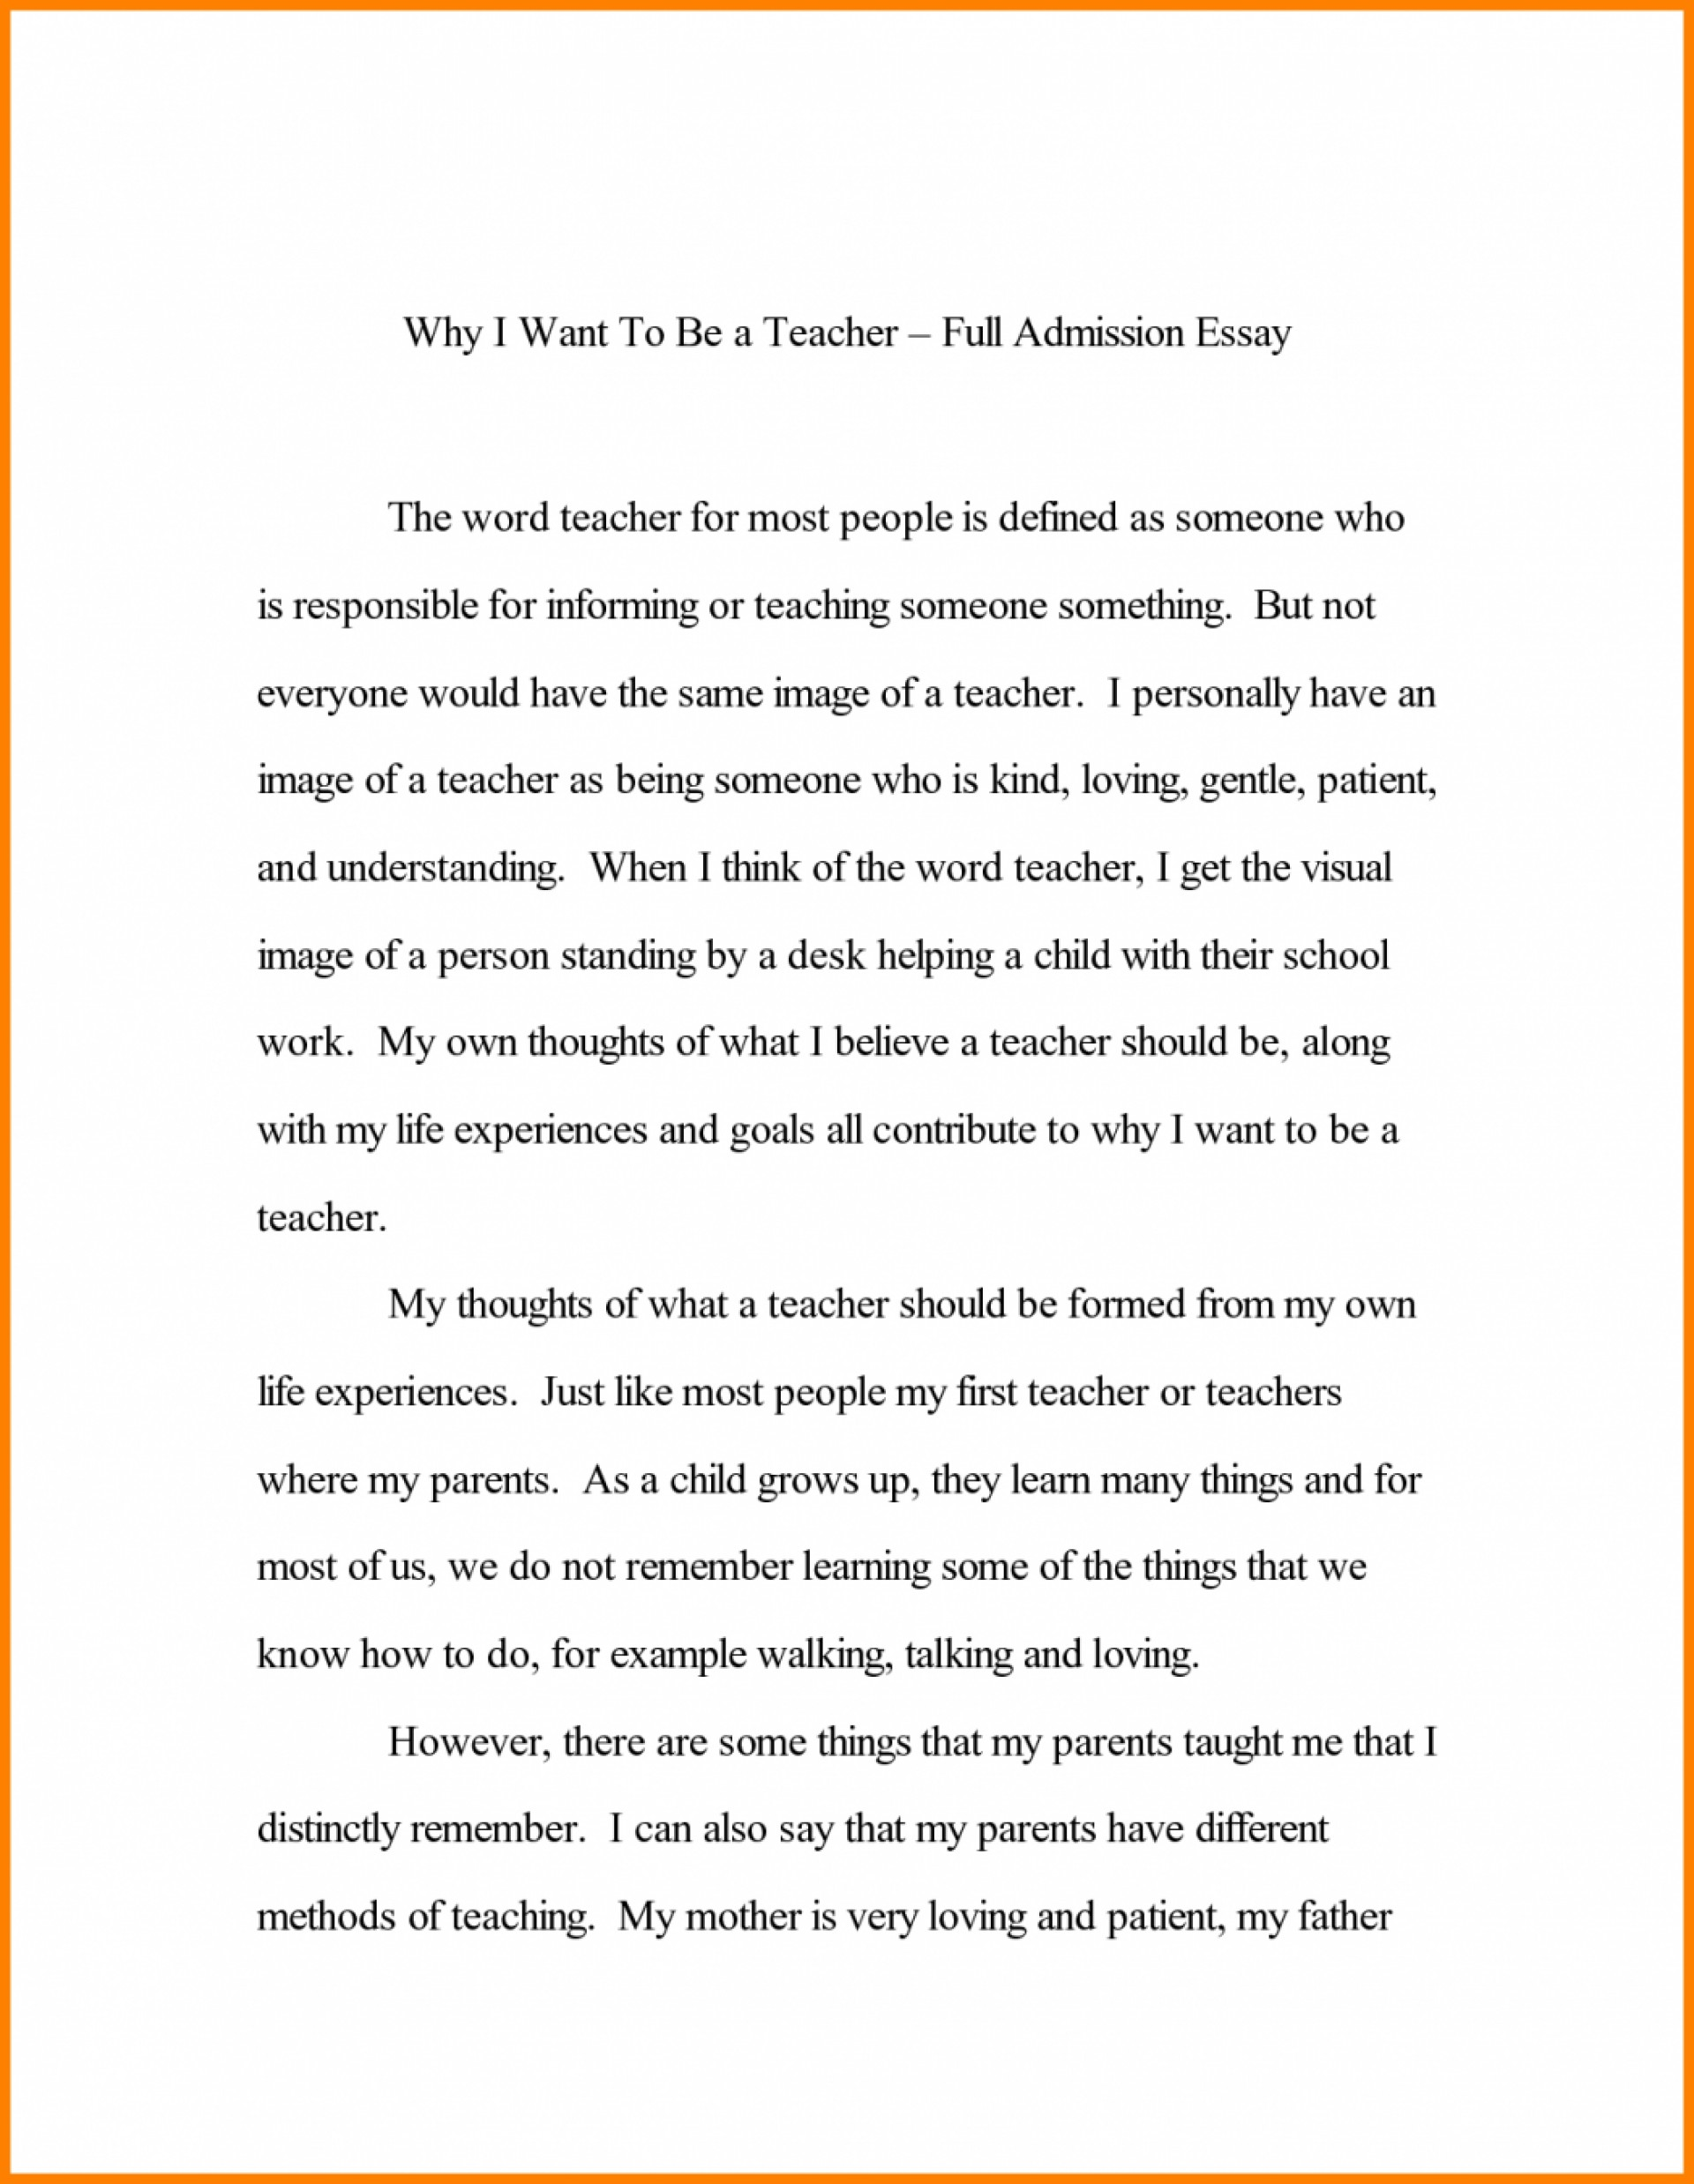 018 Common App Example Essays That Worked Application College Essay Sample For Guidelines Unique Best Examples Harvard Prompts 2014-15 1920